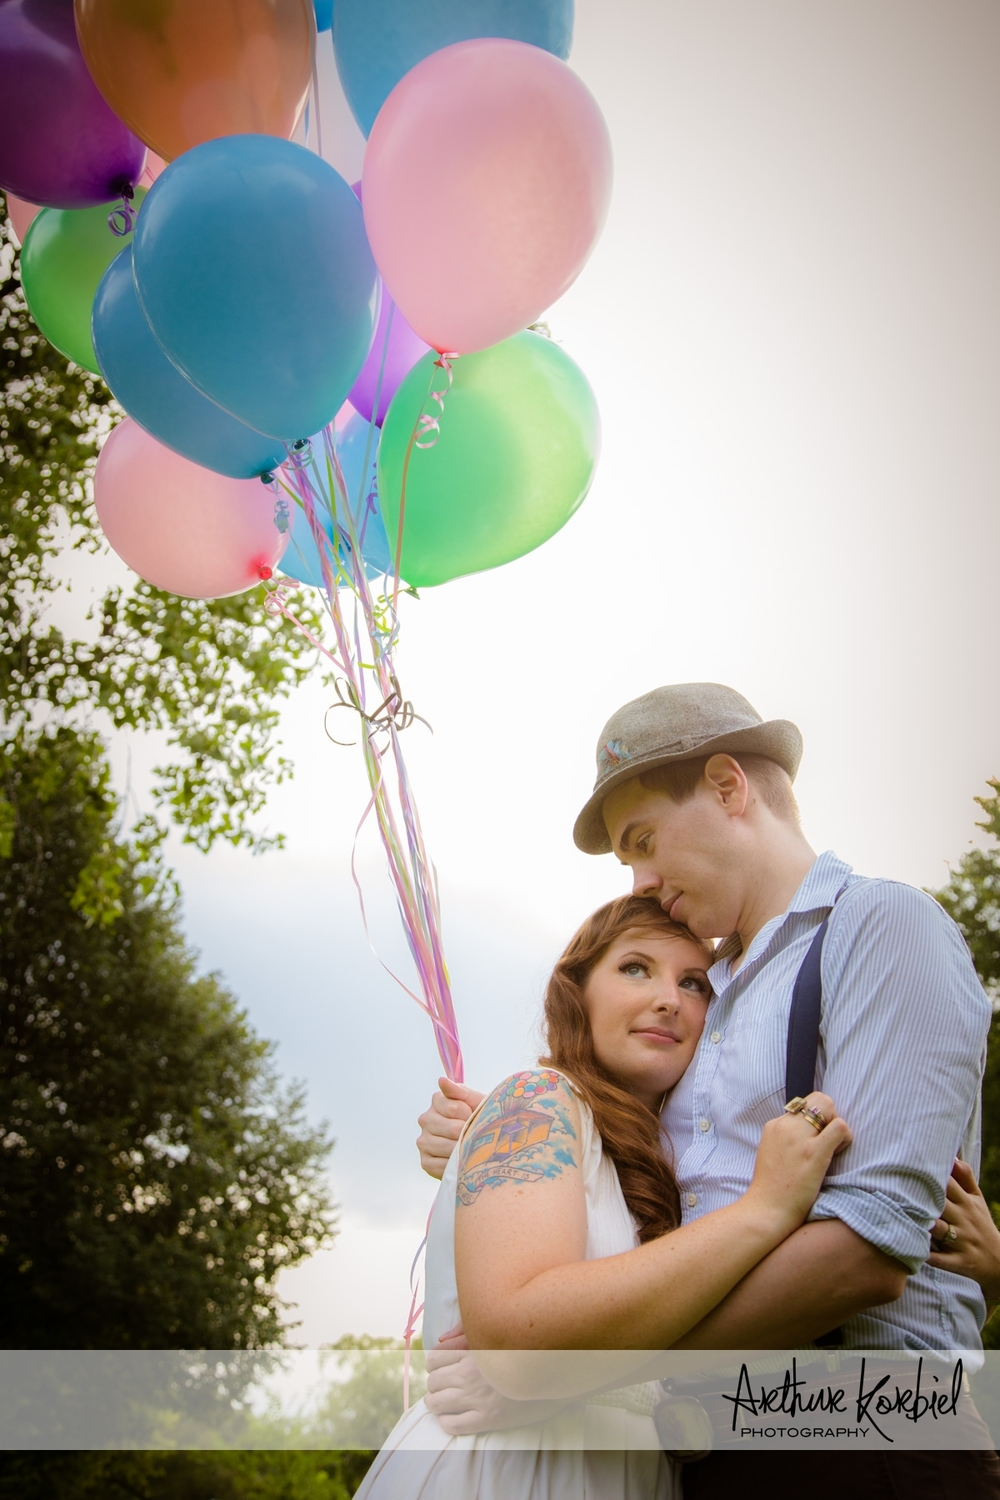 Arthur Korbiel Photography - London Engagement Photographer - Erin &Cameron-020.jpg